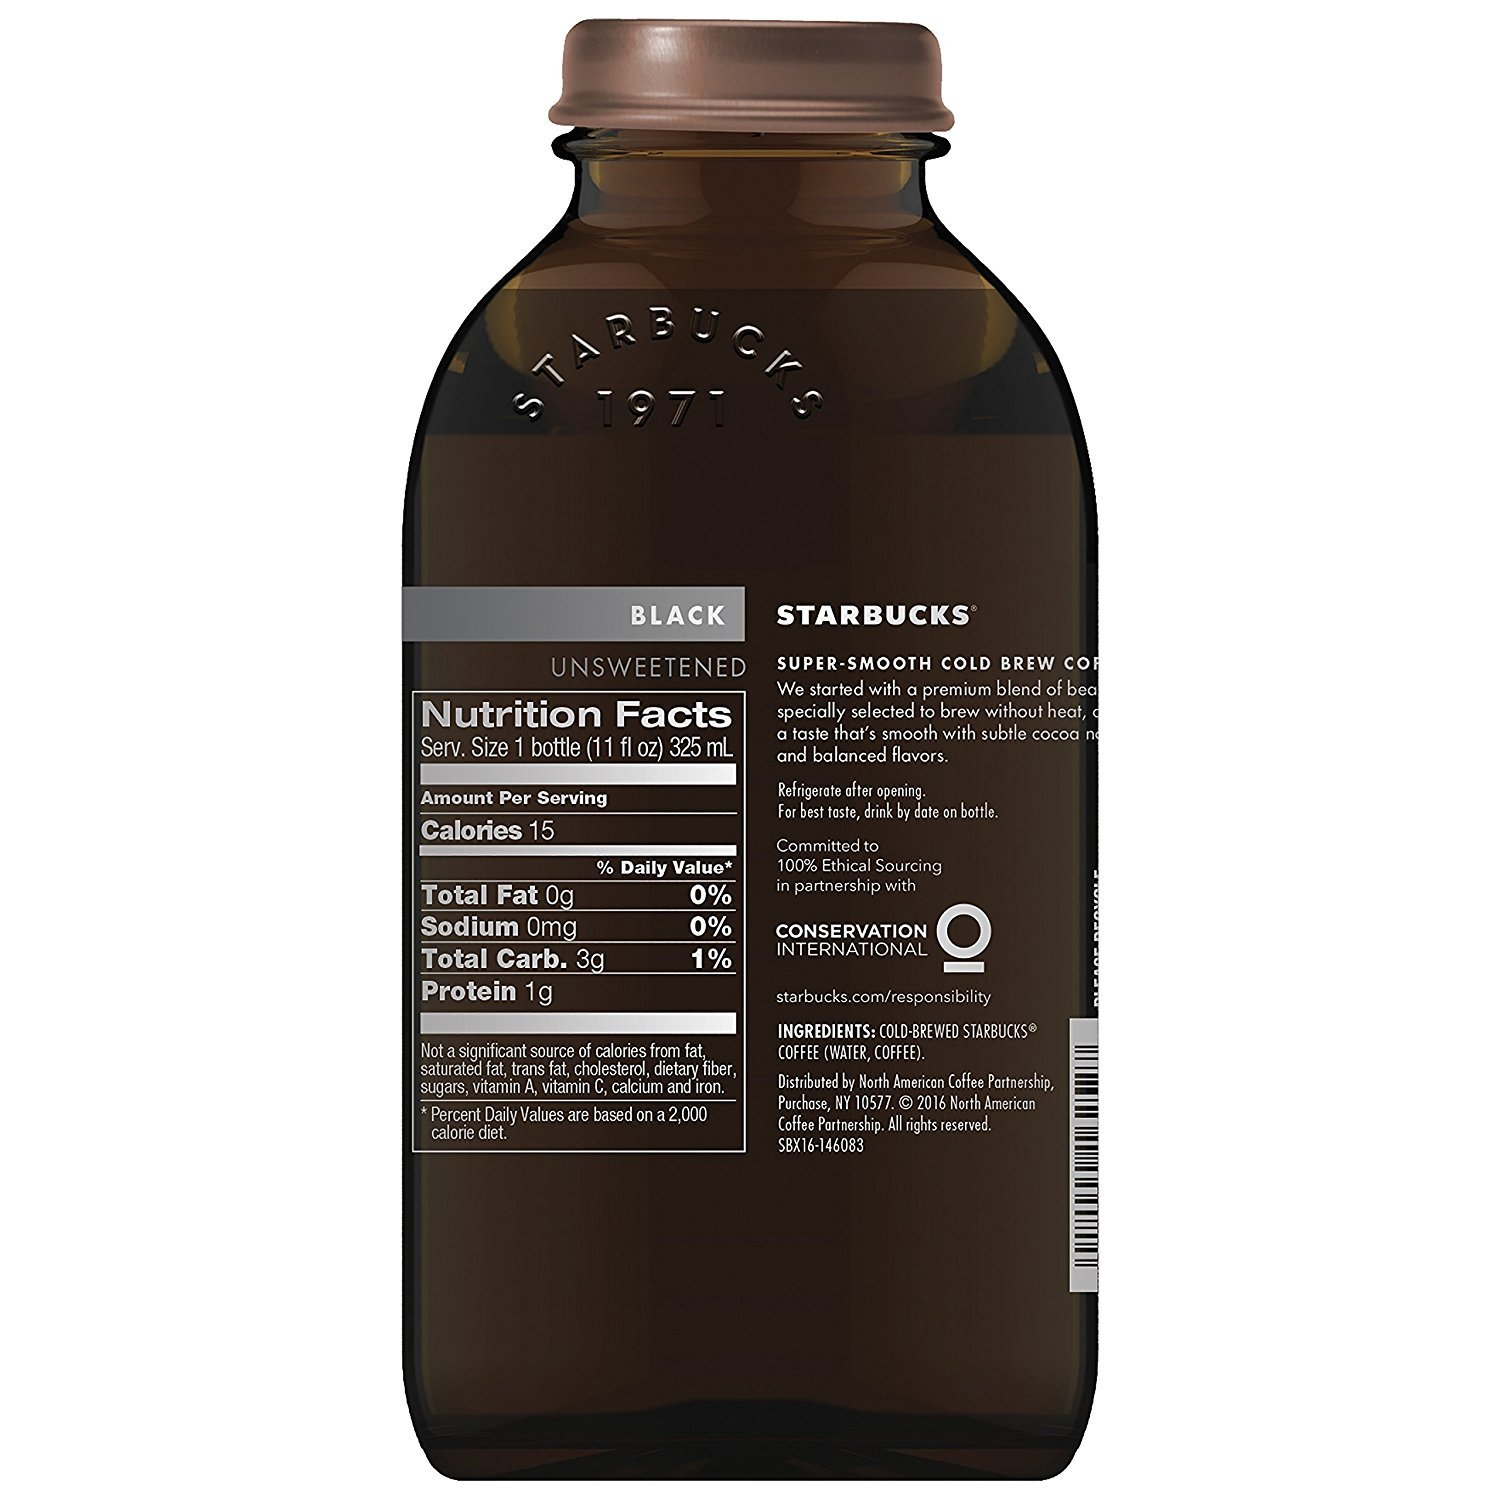 Starbucks Cold Brew Coffee, Black Unsweetened, 11 oz Glass Bottles, 6 Count by Starbucks (Image #5)